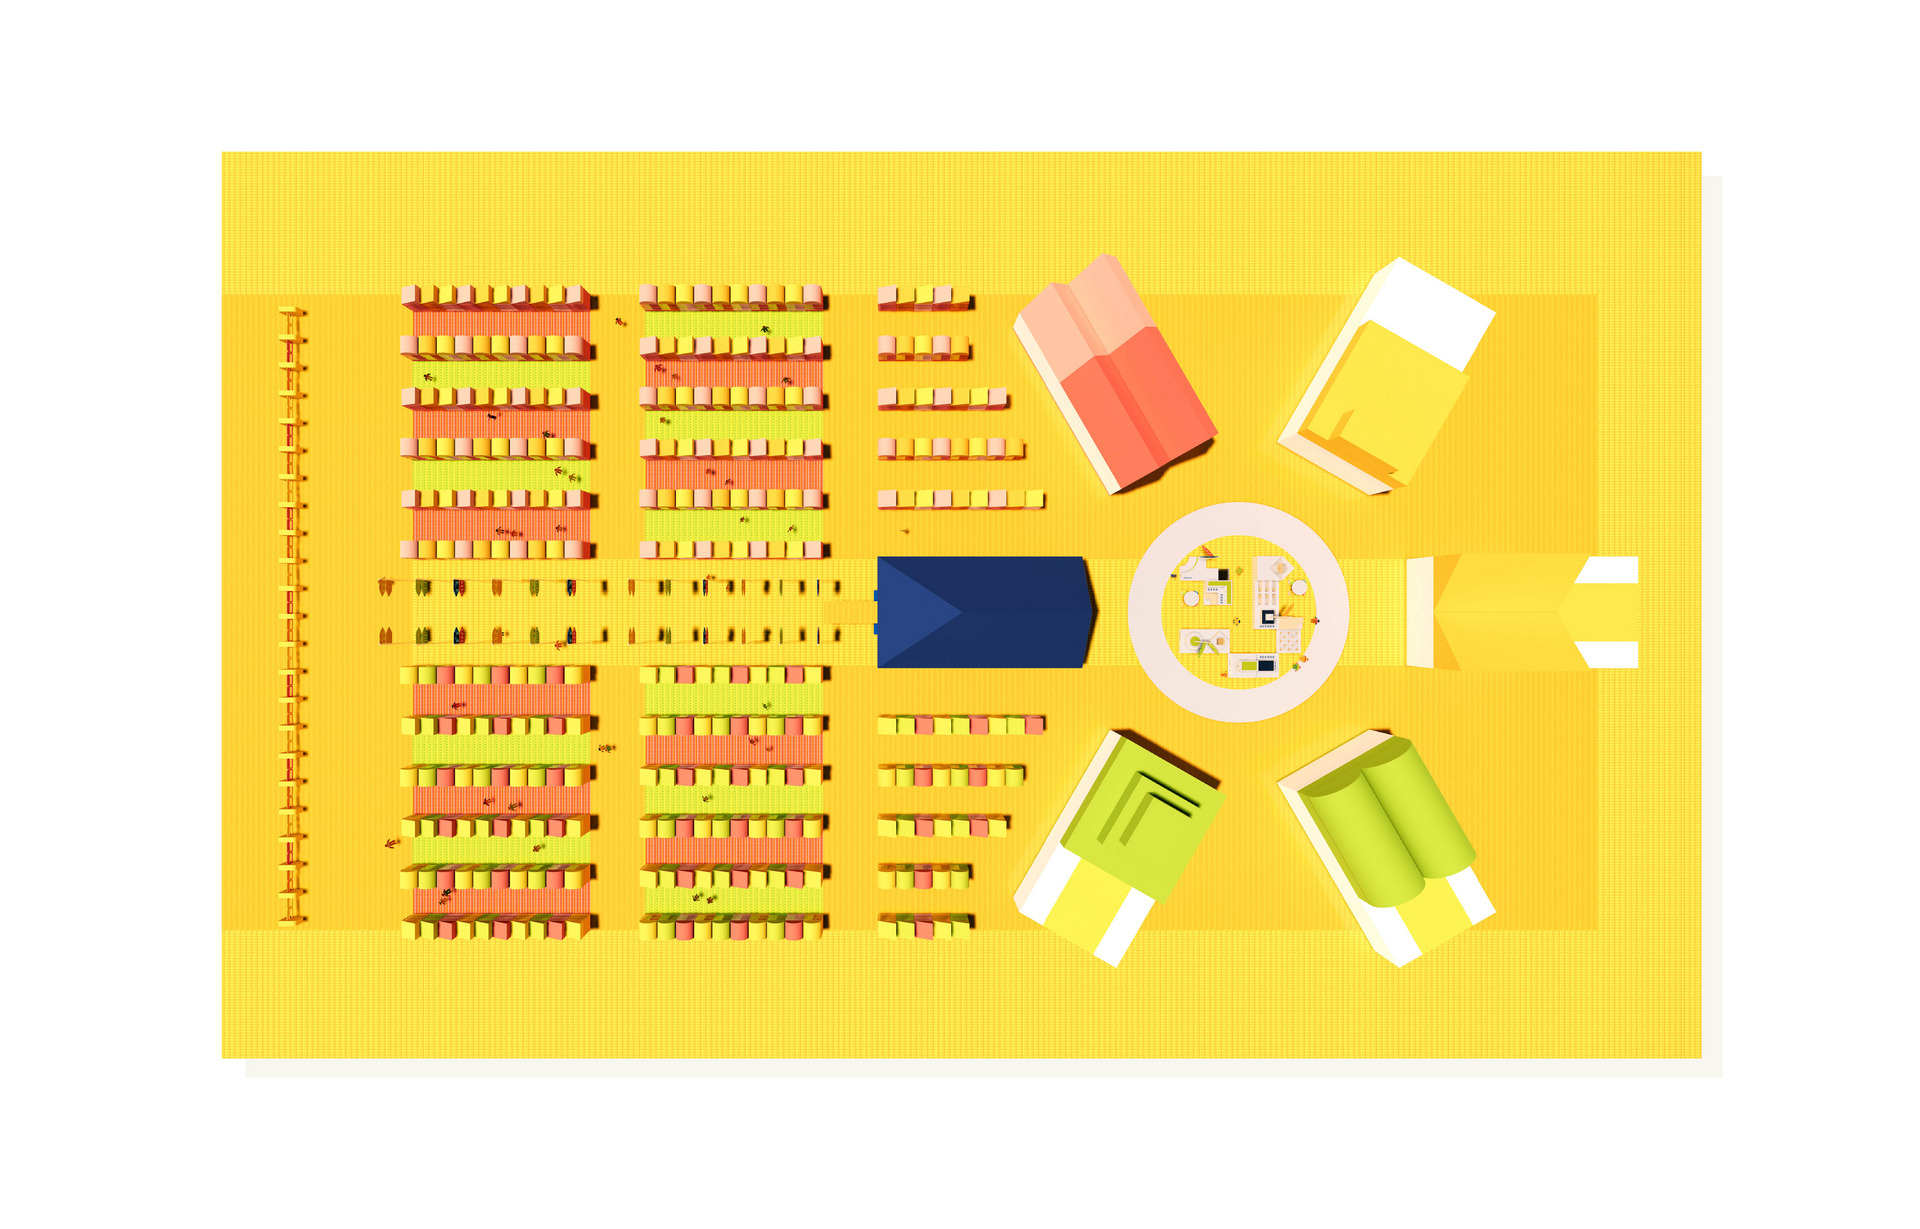 The Board - Supermarket of 2030 Layout